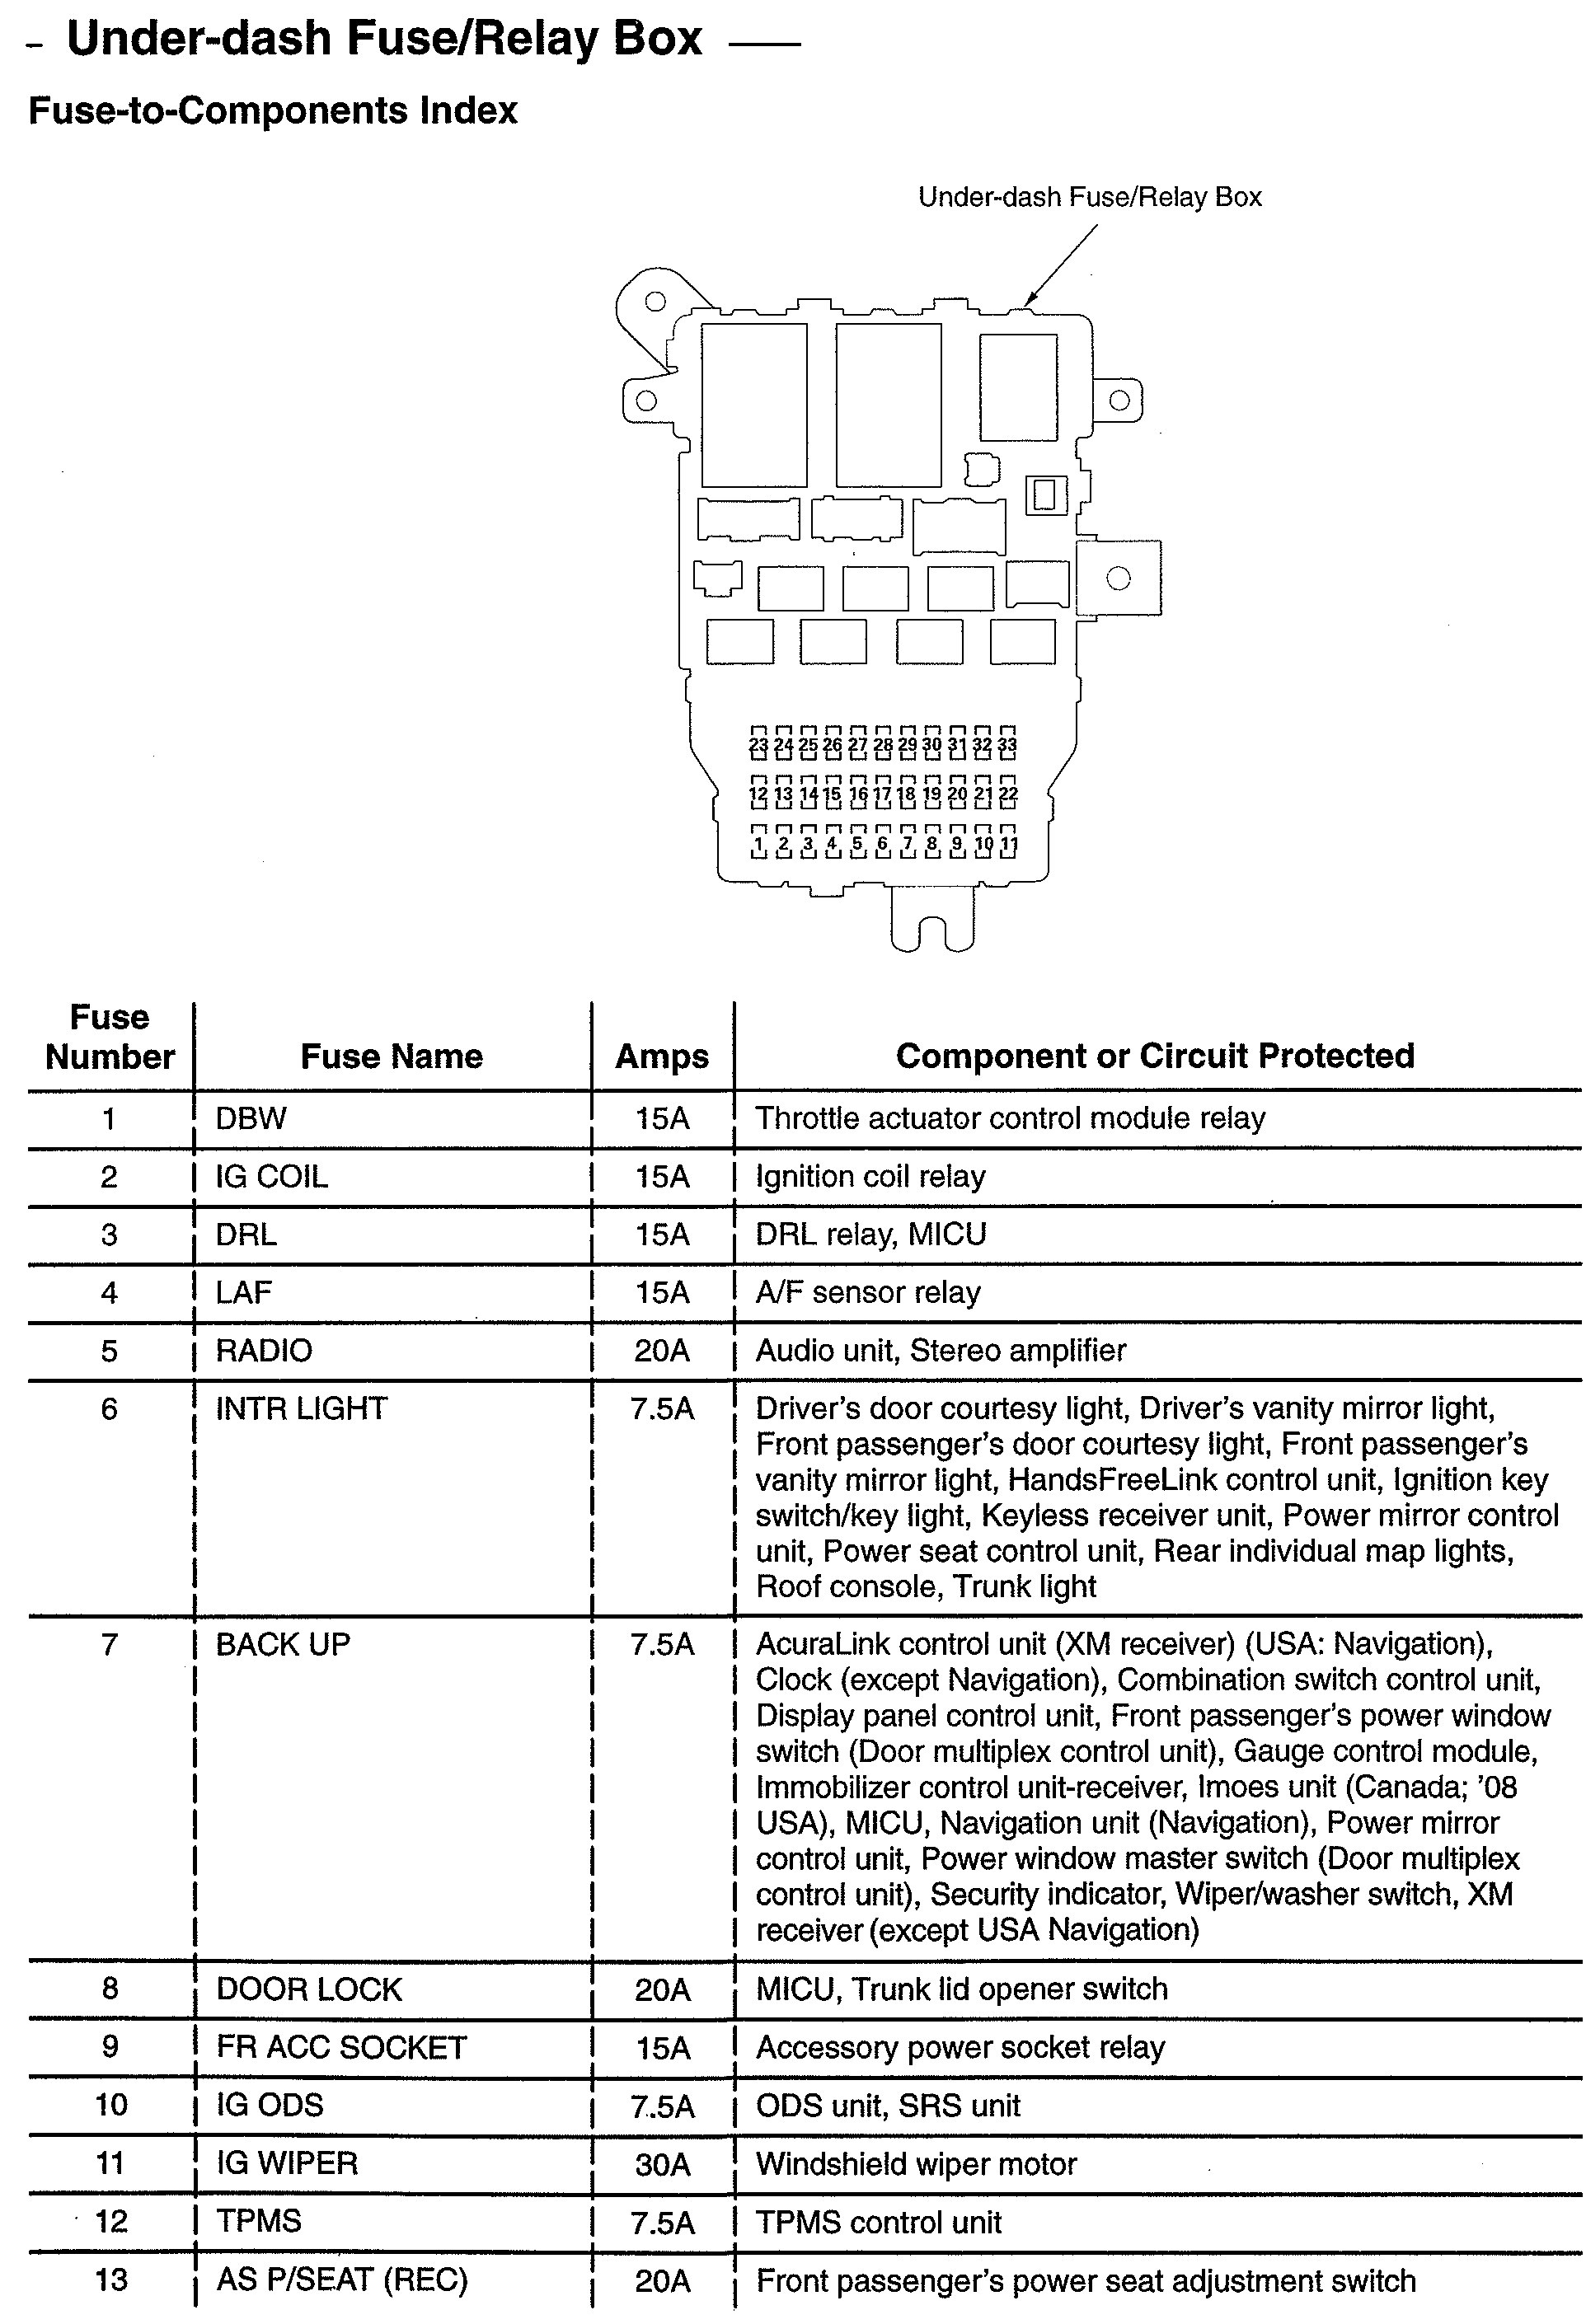 acura tl wiring diagram fuse panel 1 2008 acura tl (2008) wiring diagrams fuse panel carknowledge 2007 acura tl wiring diagram at panicattacktreatment.co